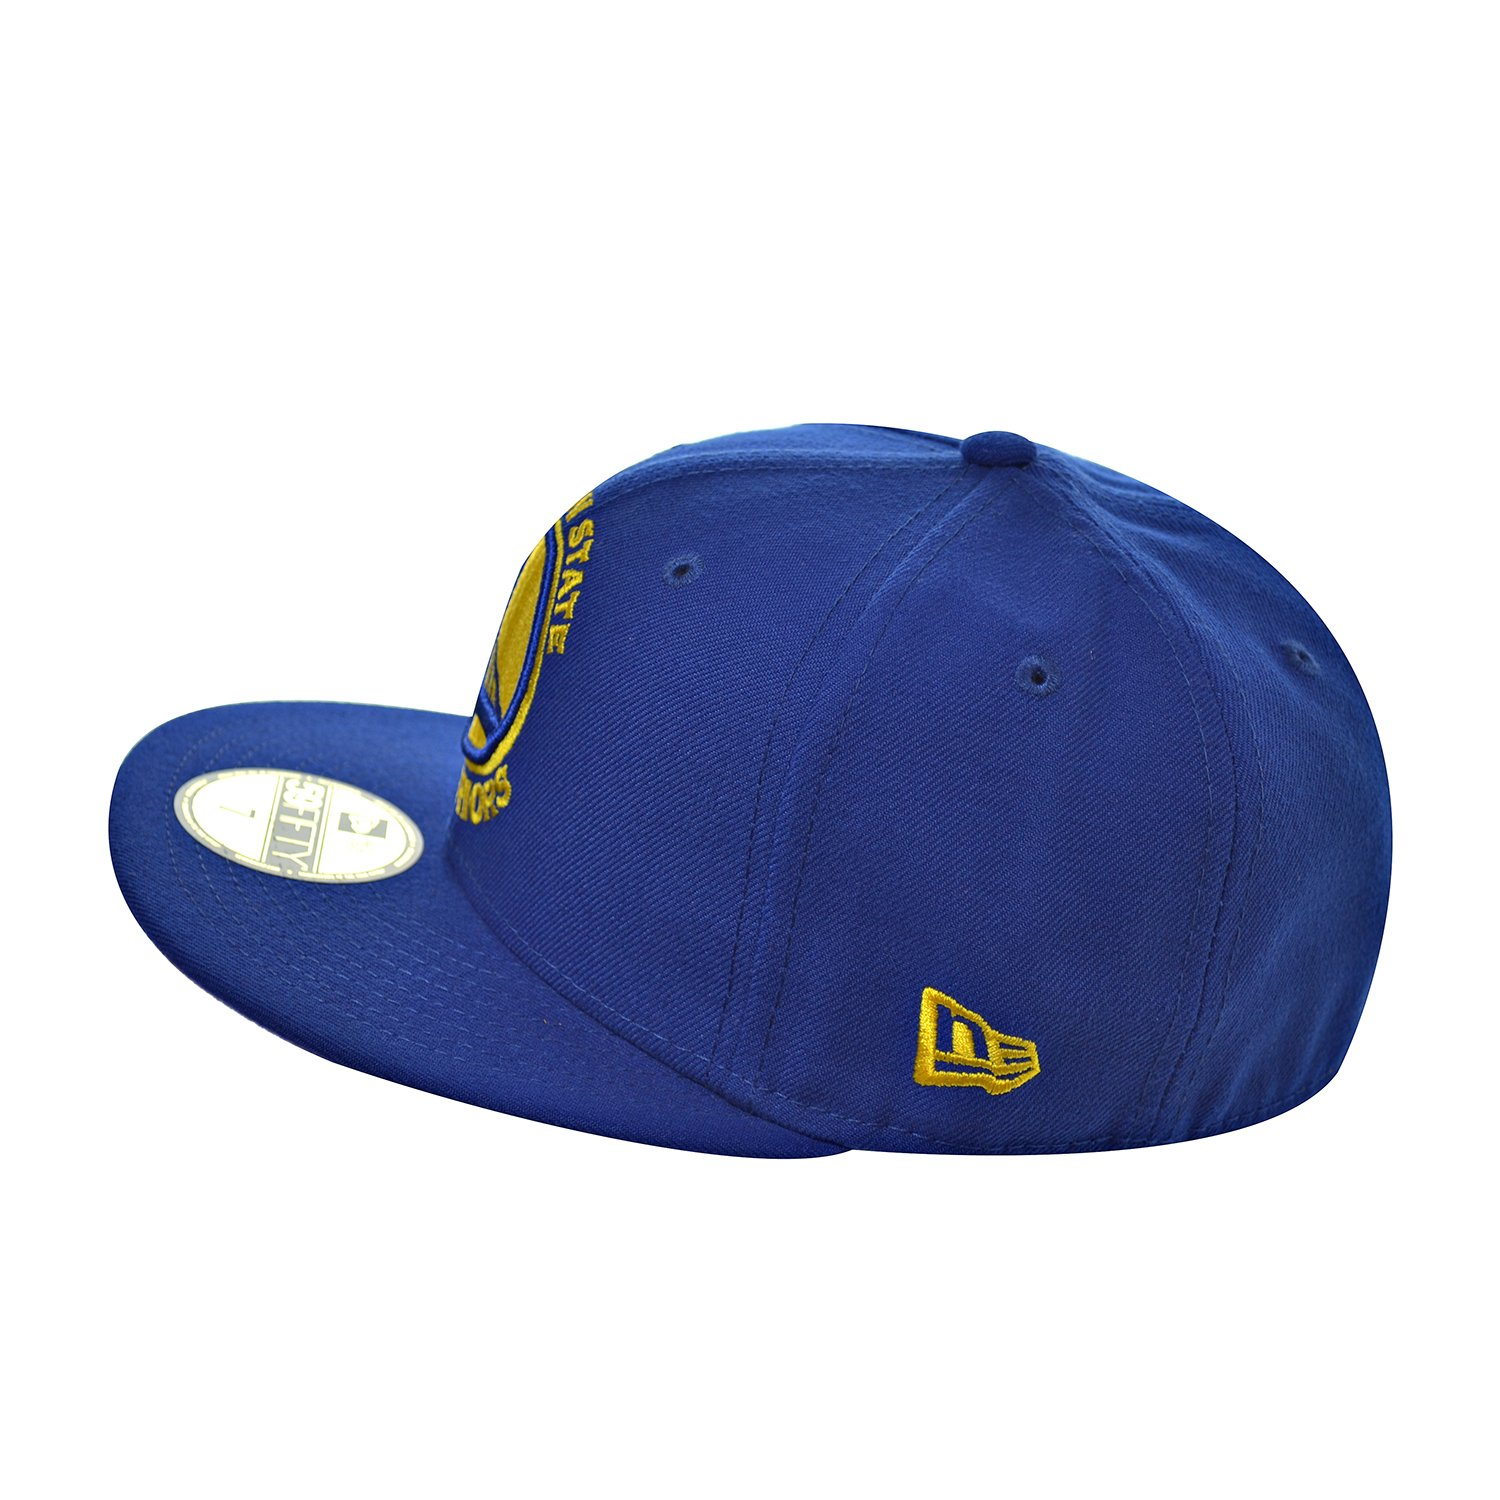 buy popular 60e91 2d136 New Era 59Fifty Hat NBA Golden State Warriors 1946 Team Superb Royal Blue  Cap at Amazon Men s Clothing store